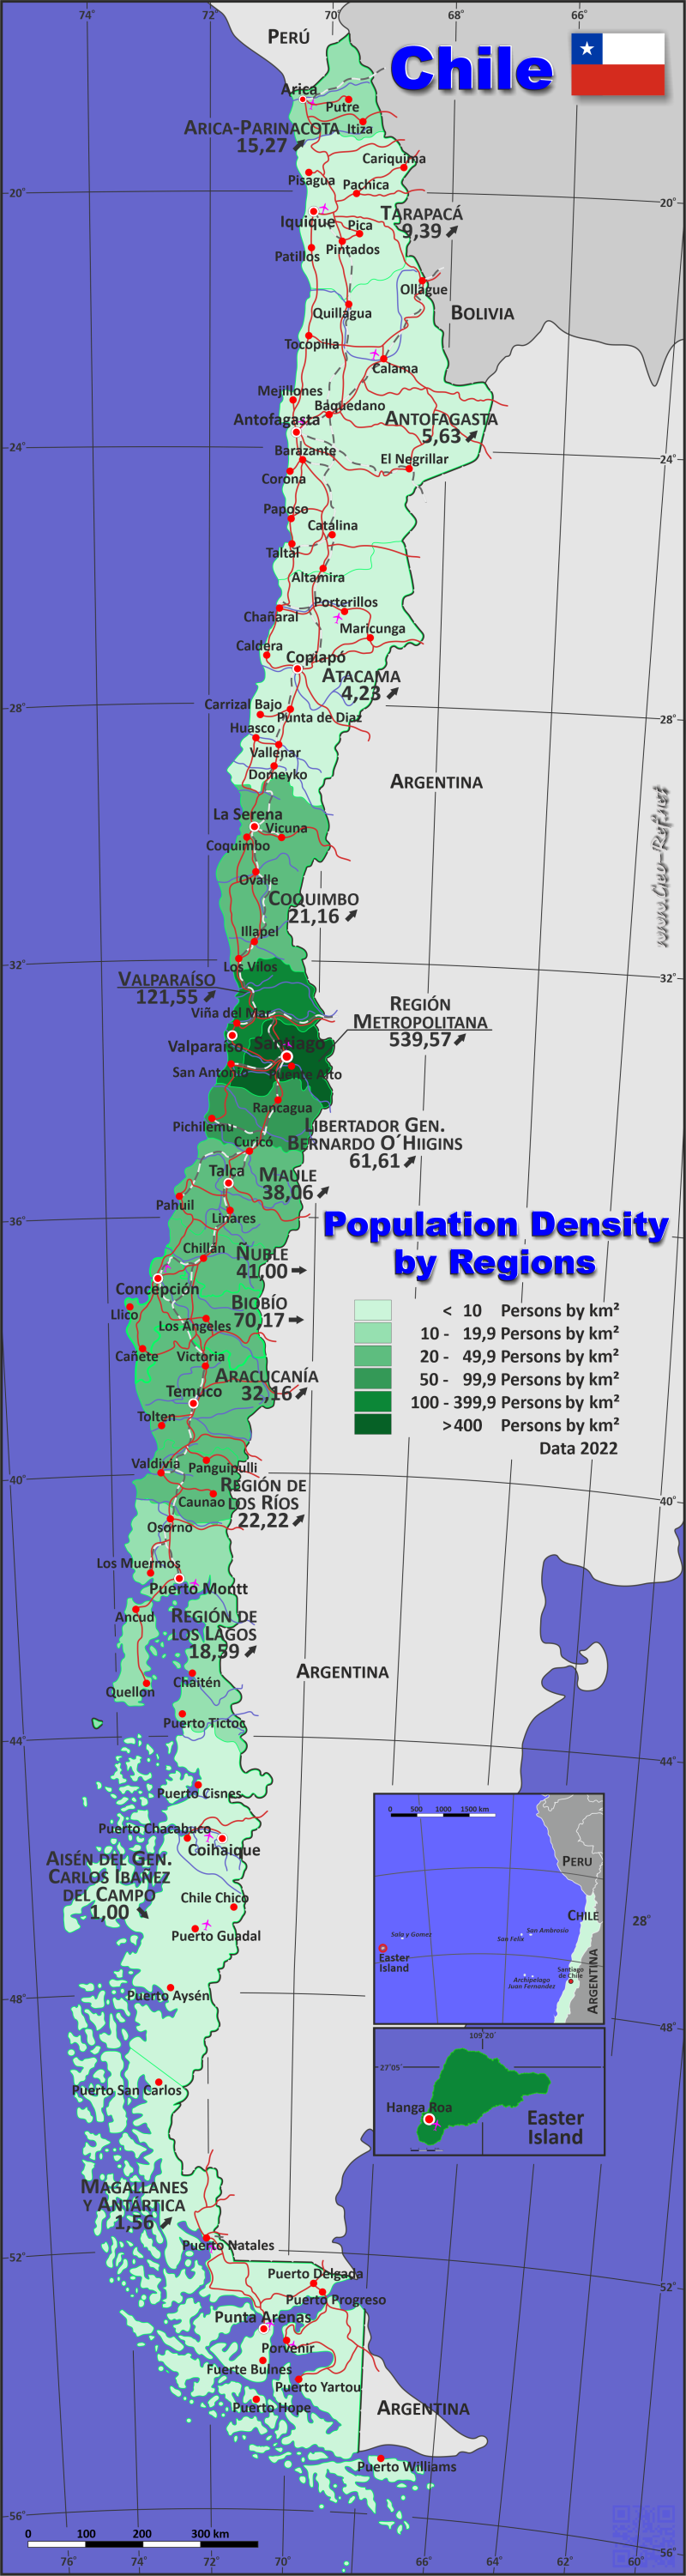 Chile Country data links and maps of the population density by